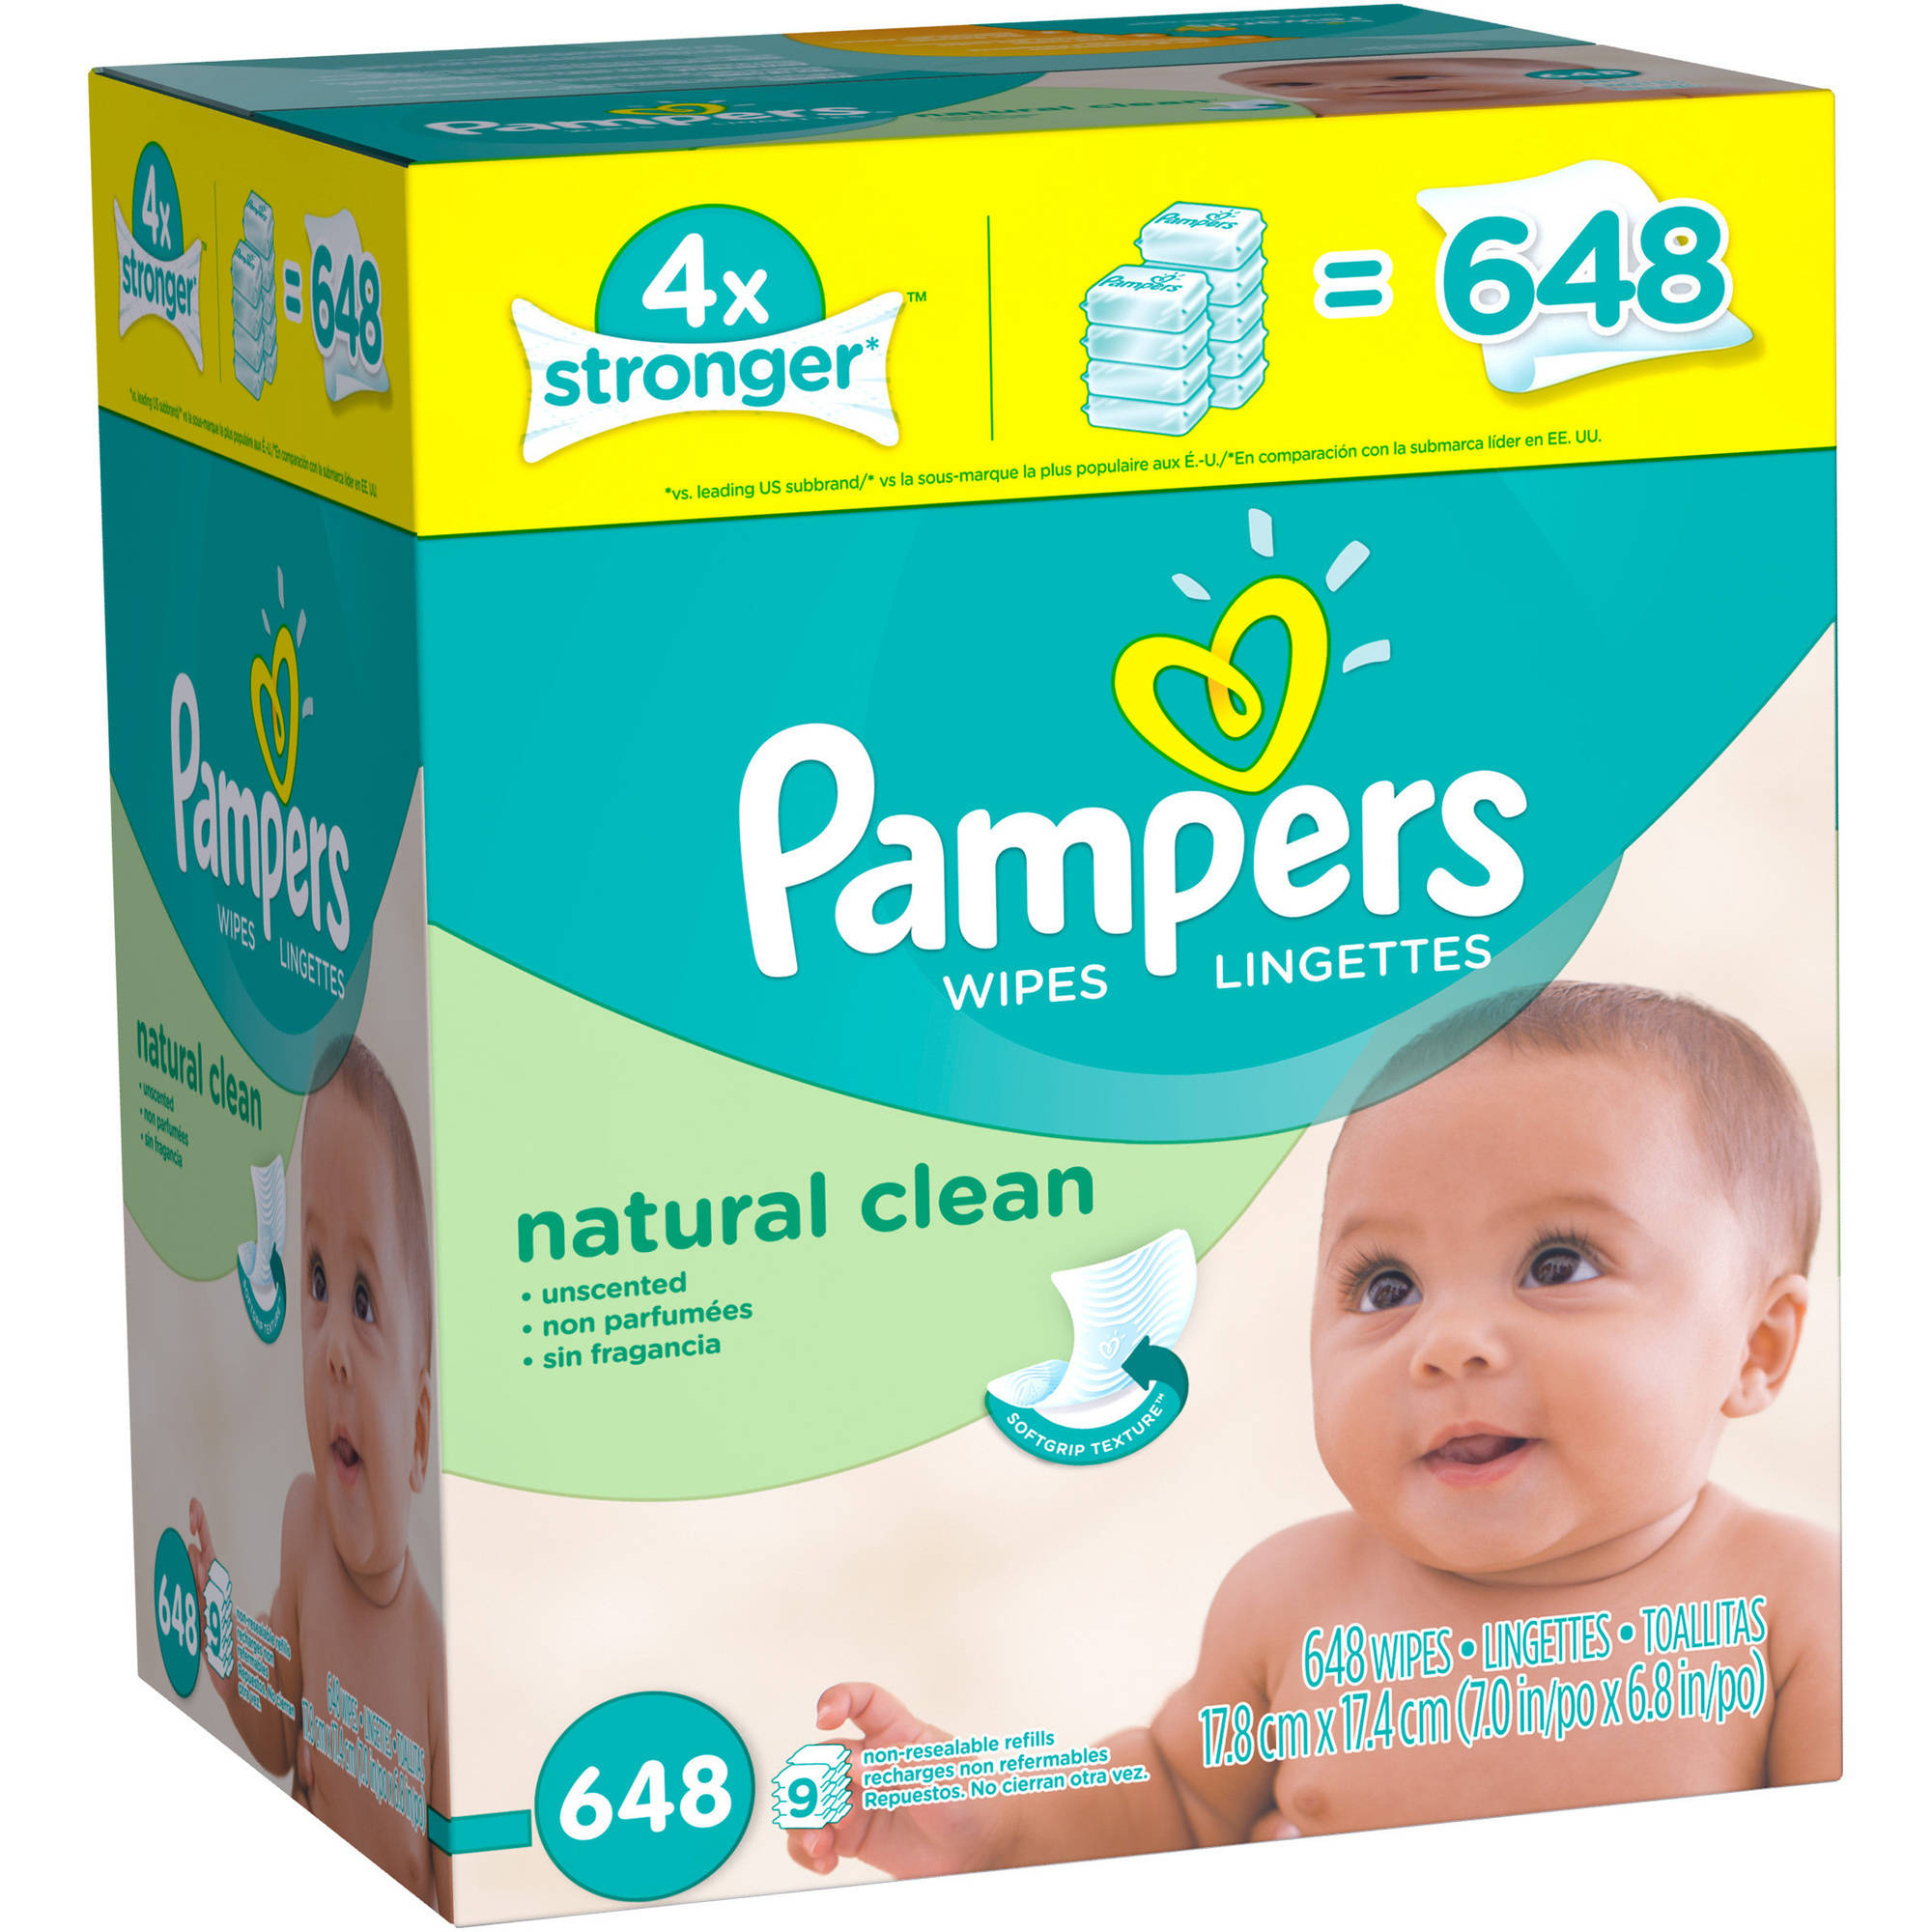 Pampers Natural Clean Baby Wipes Refills, 648 sheets